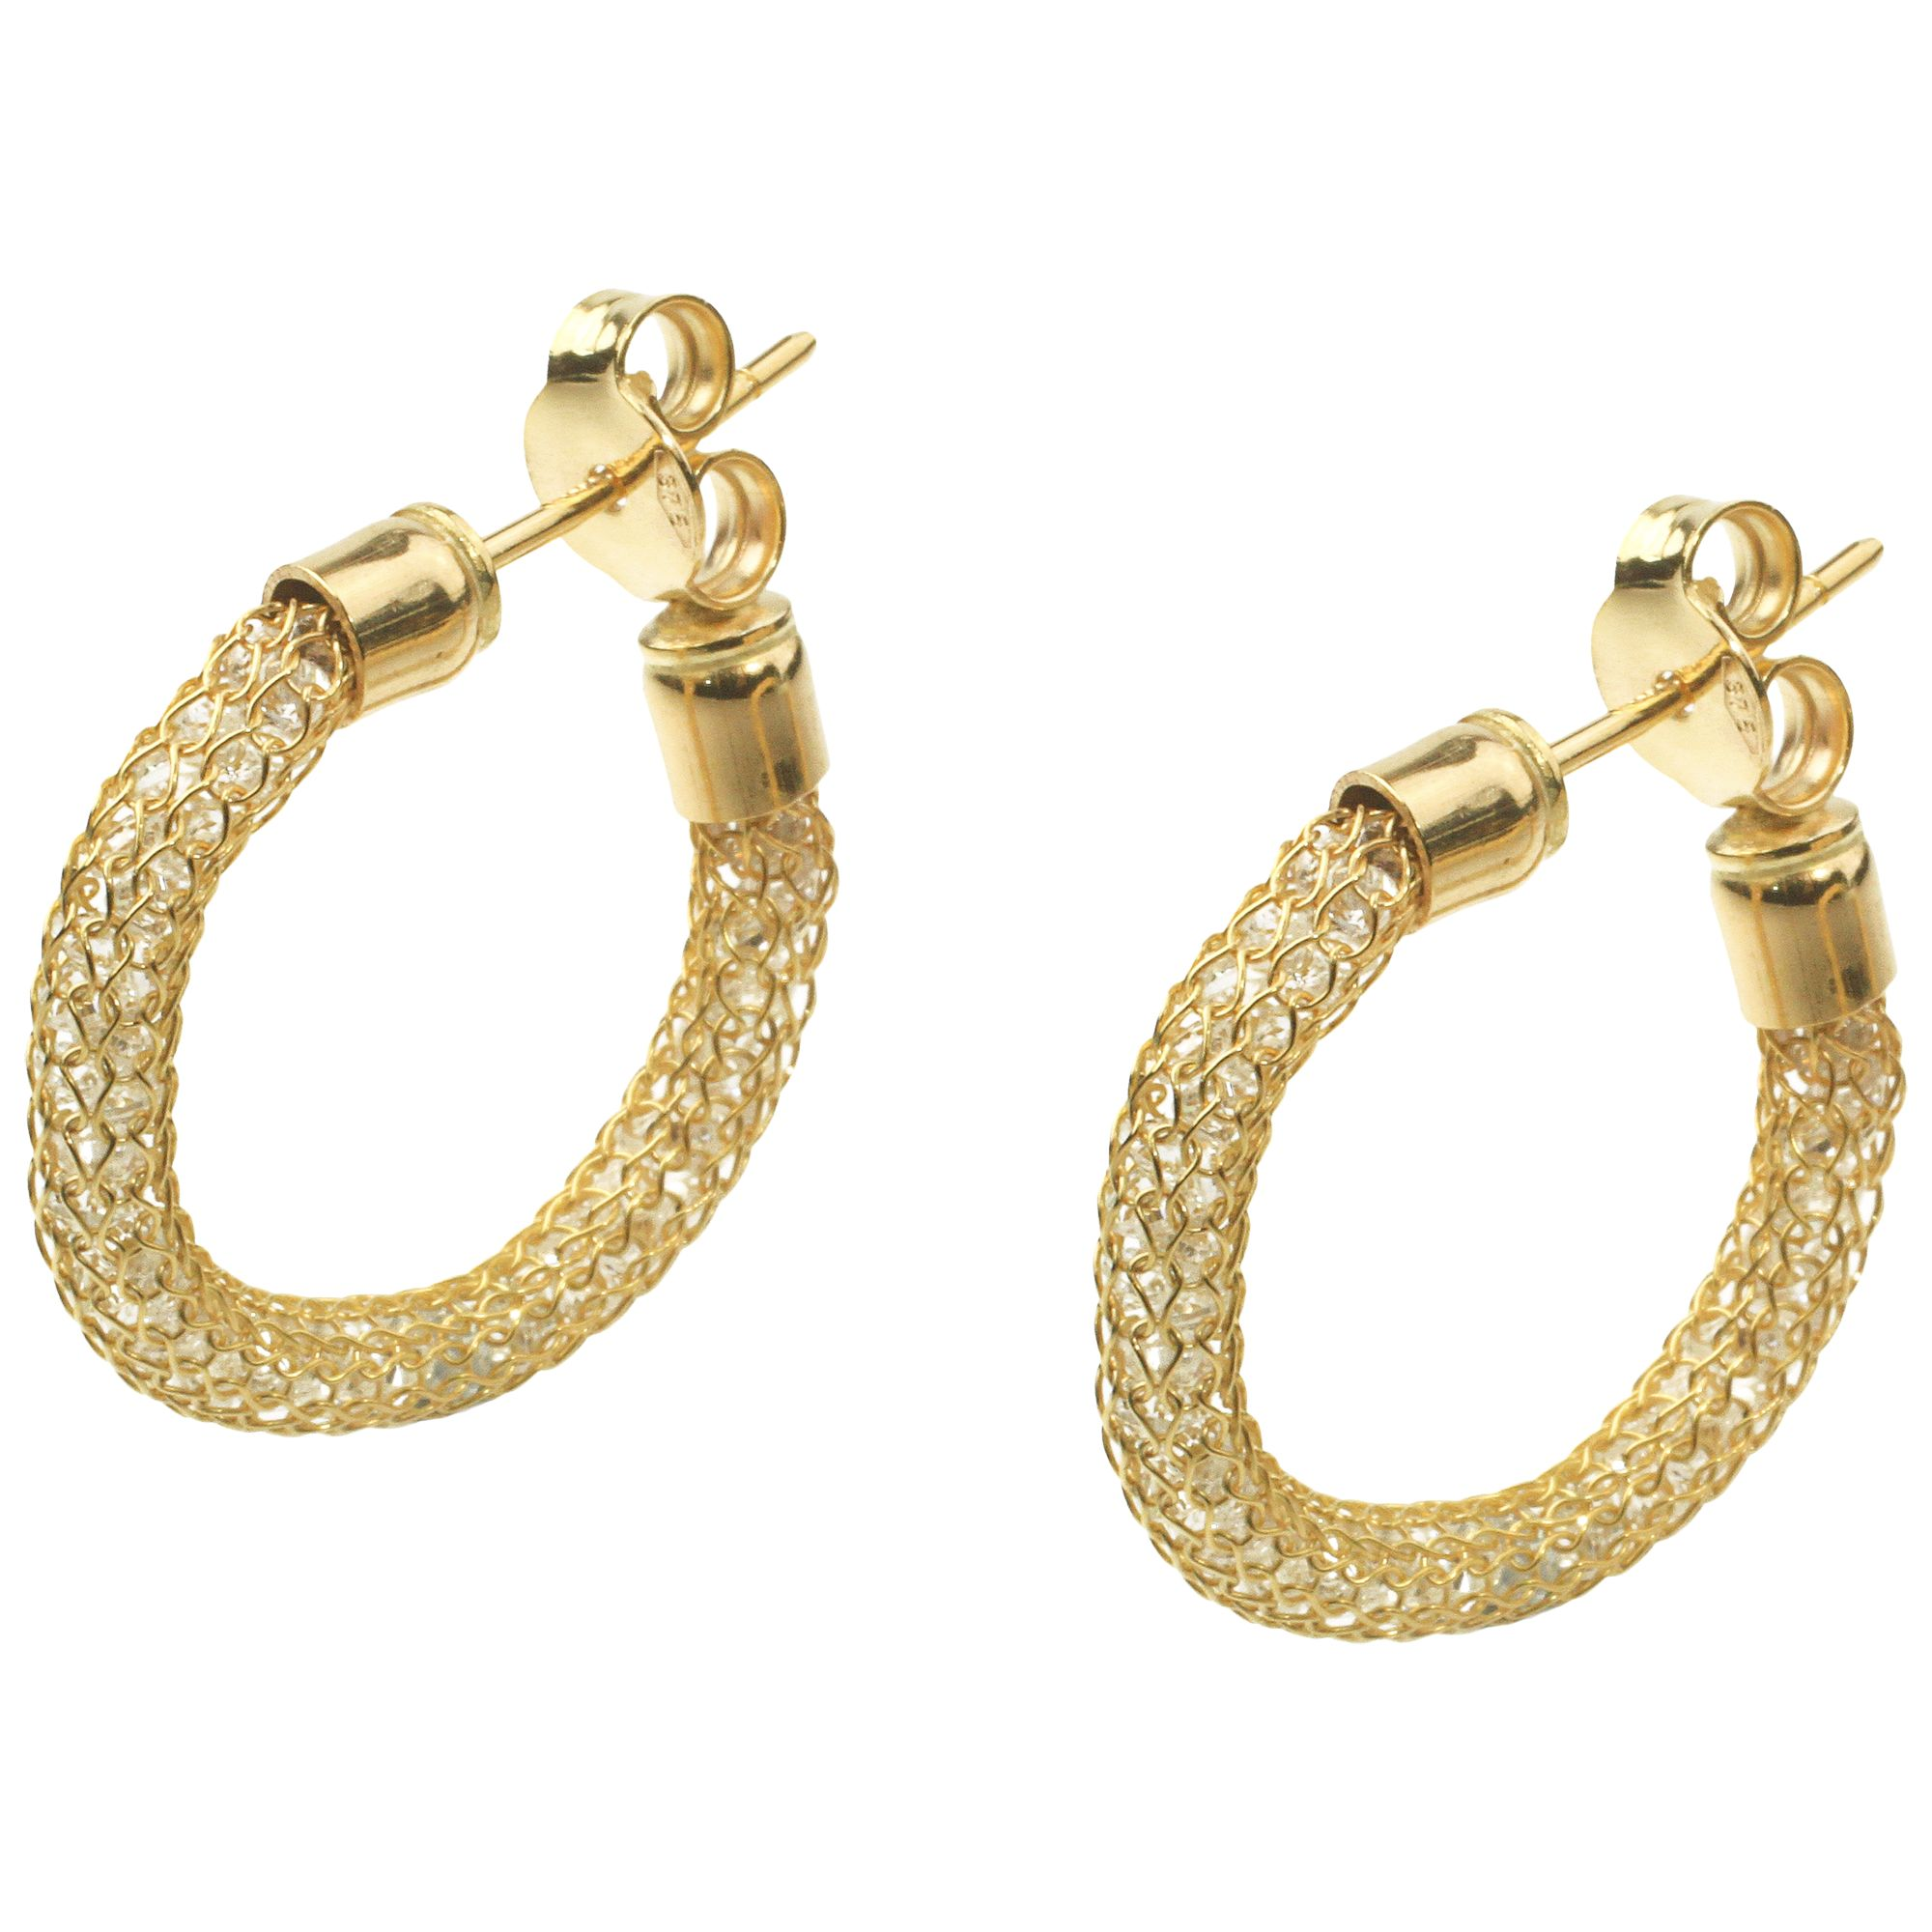 Gold Earrings - Shop online for gold earrings with The Fine Jewellery Company. Choose from a wide range of beautiful earring designs and styles, from 9ct yellow gold hoop earrings or 9ct rose gold pearl drop earrings to 18ct white gold and diamond studs.5/5().